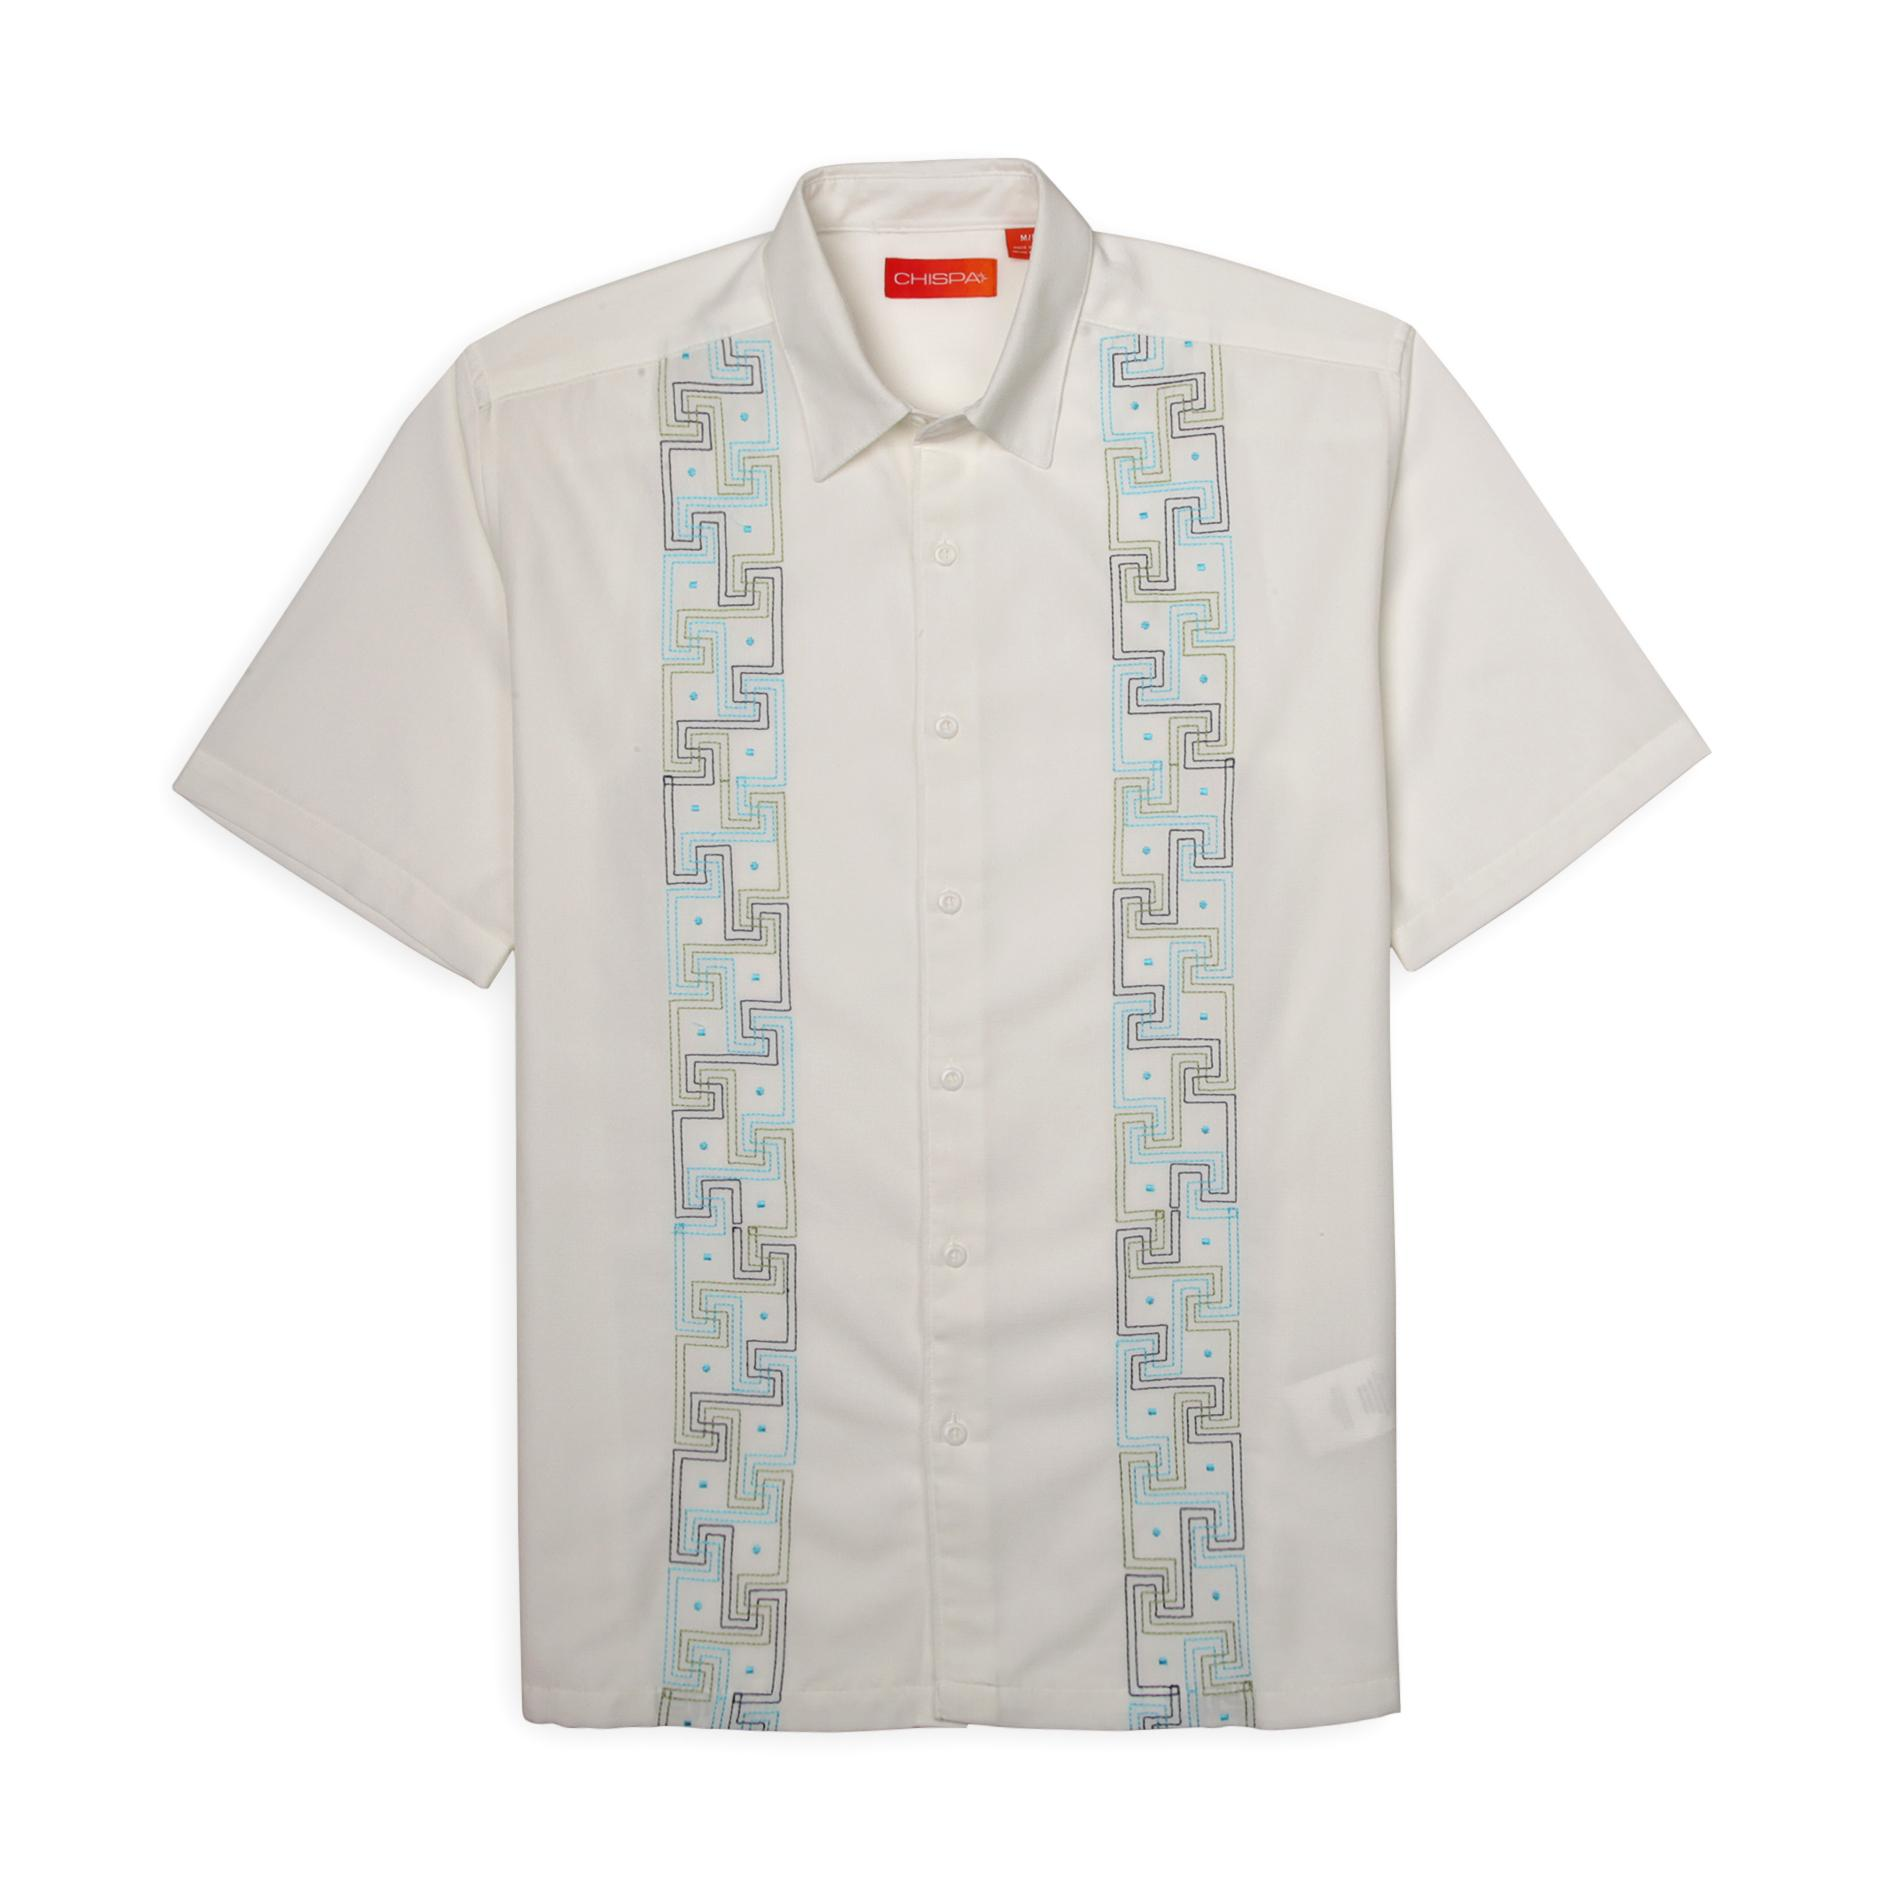 Chispa Men's Embroidered Casual Shirt - Geometric Key